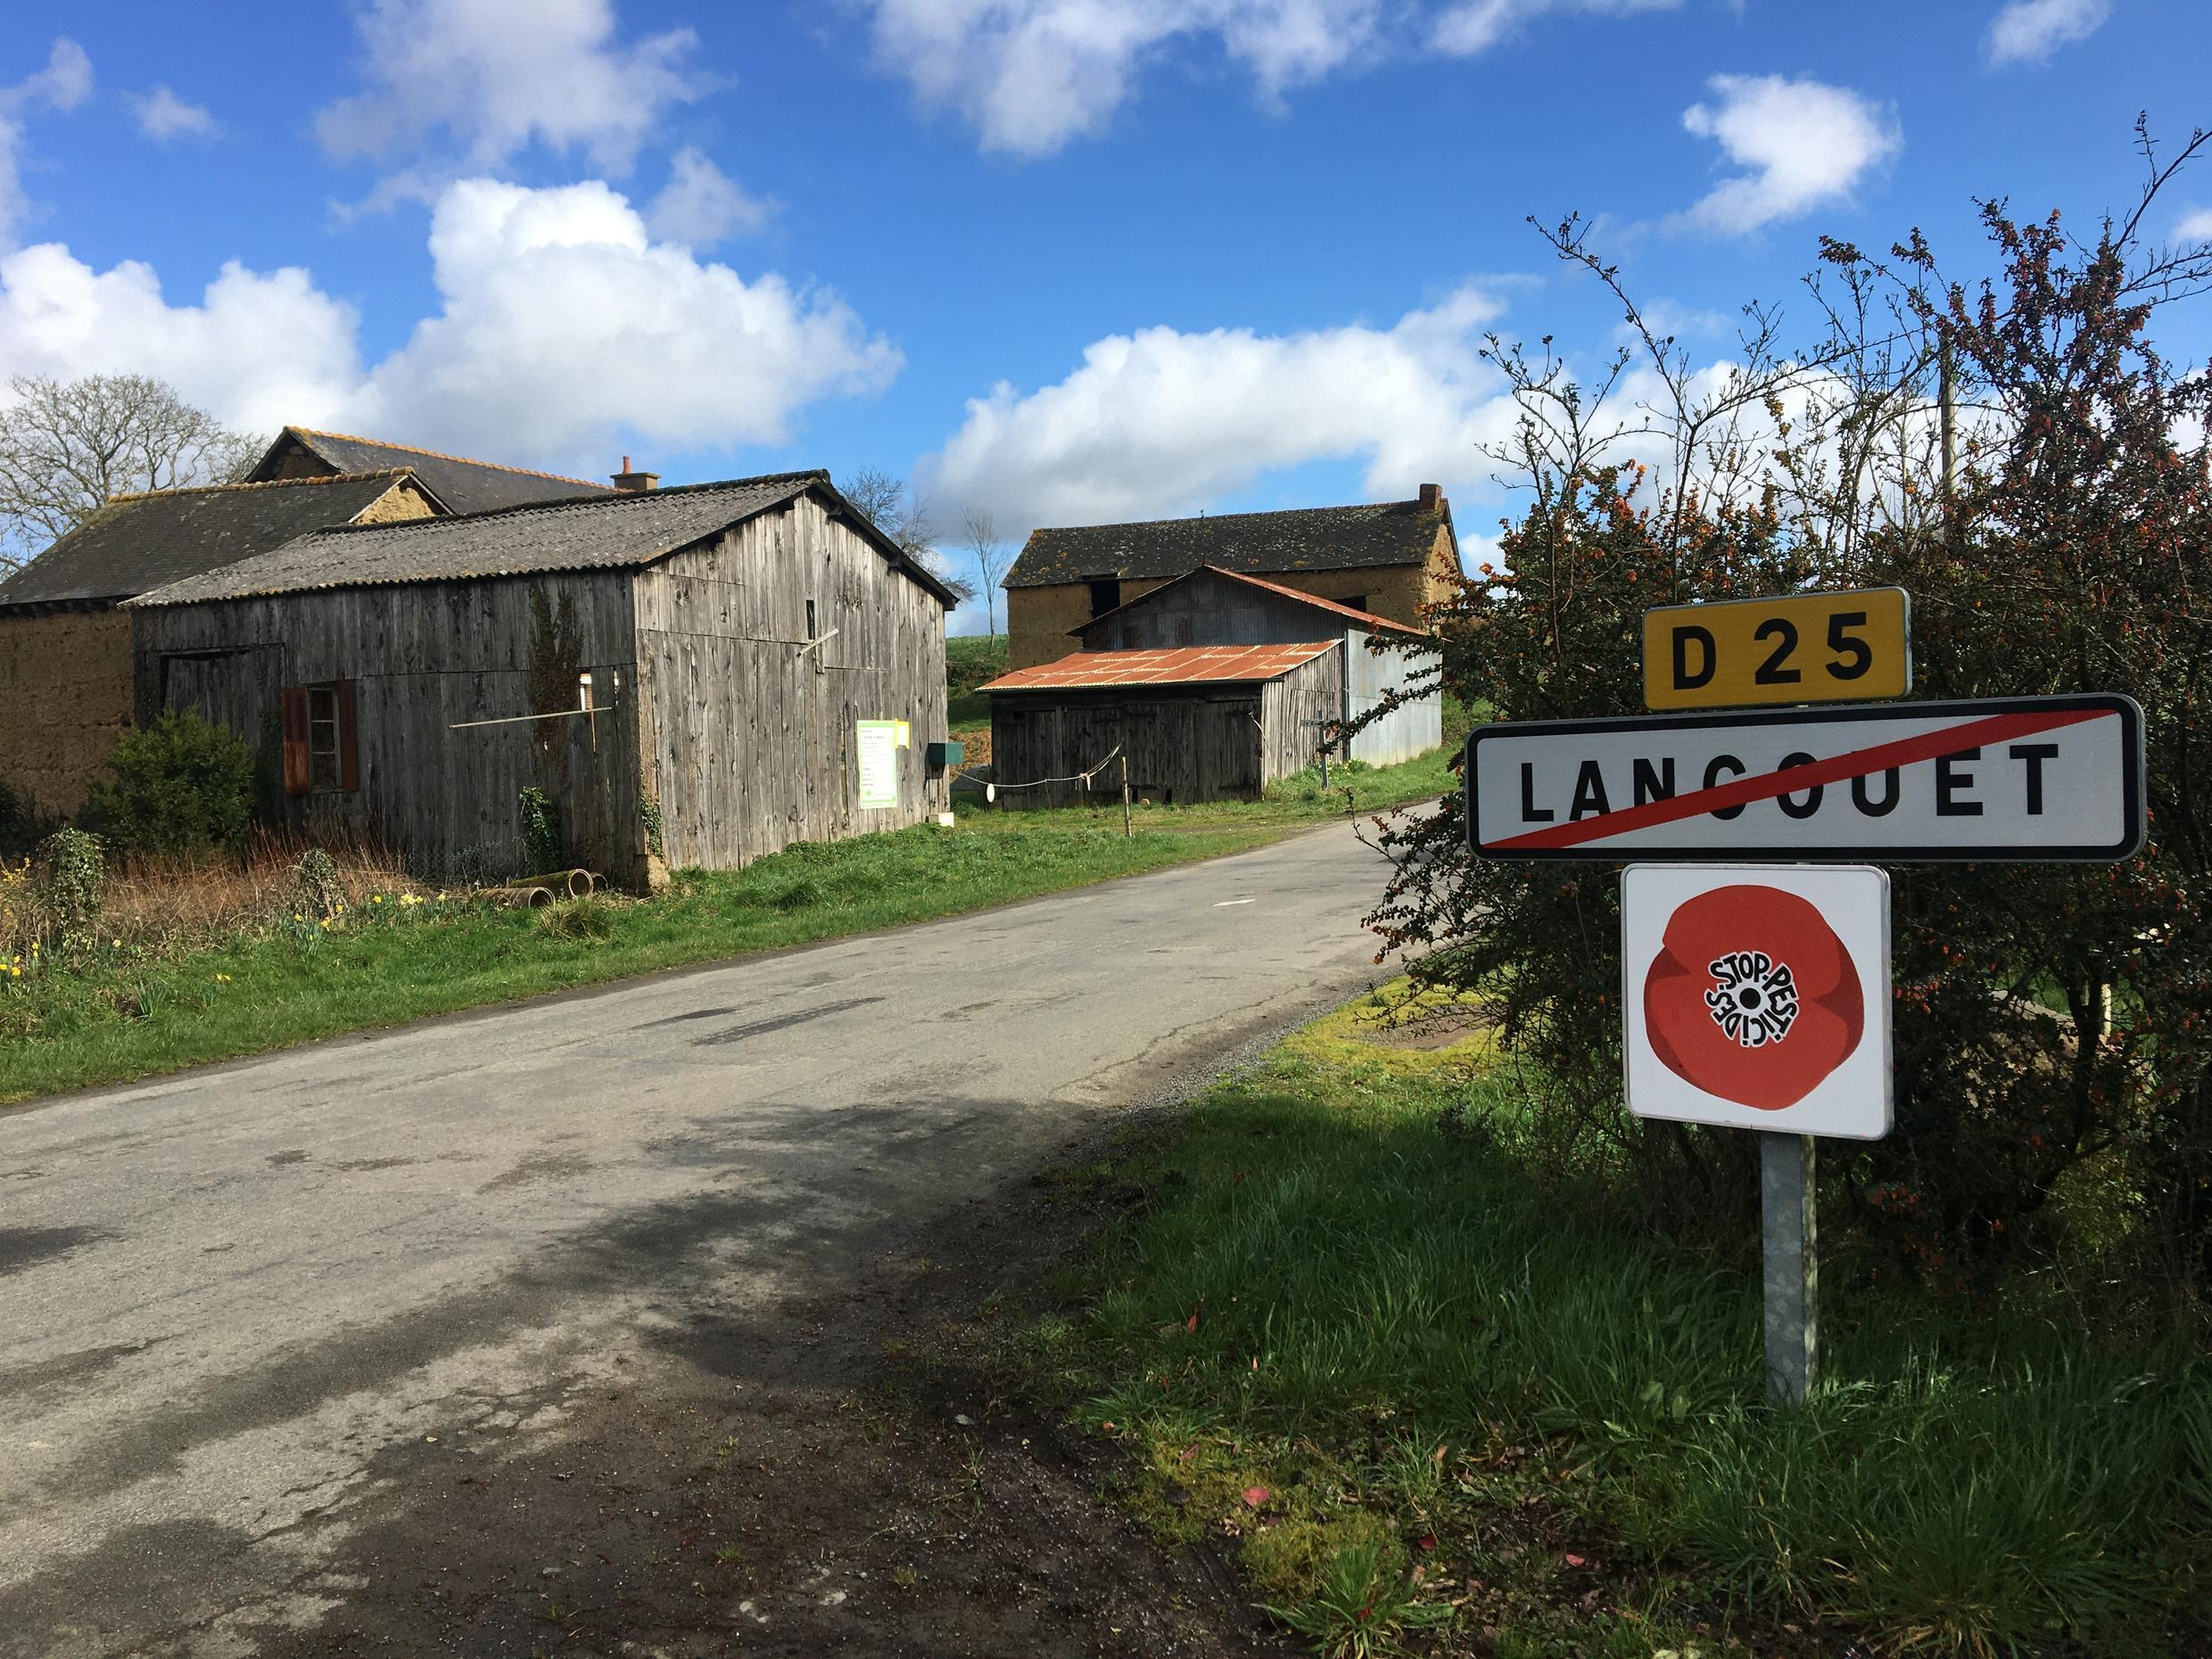 Critics say Langouët's ban on pesticides has driven a wedge between farmers in the village.